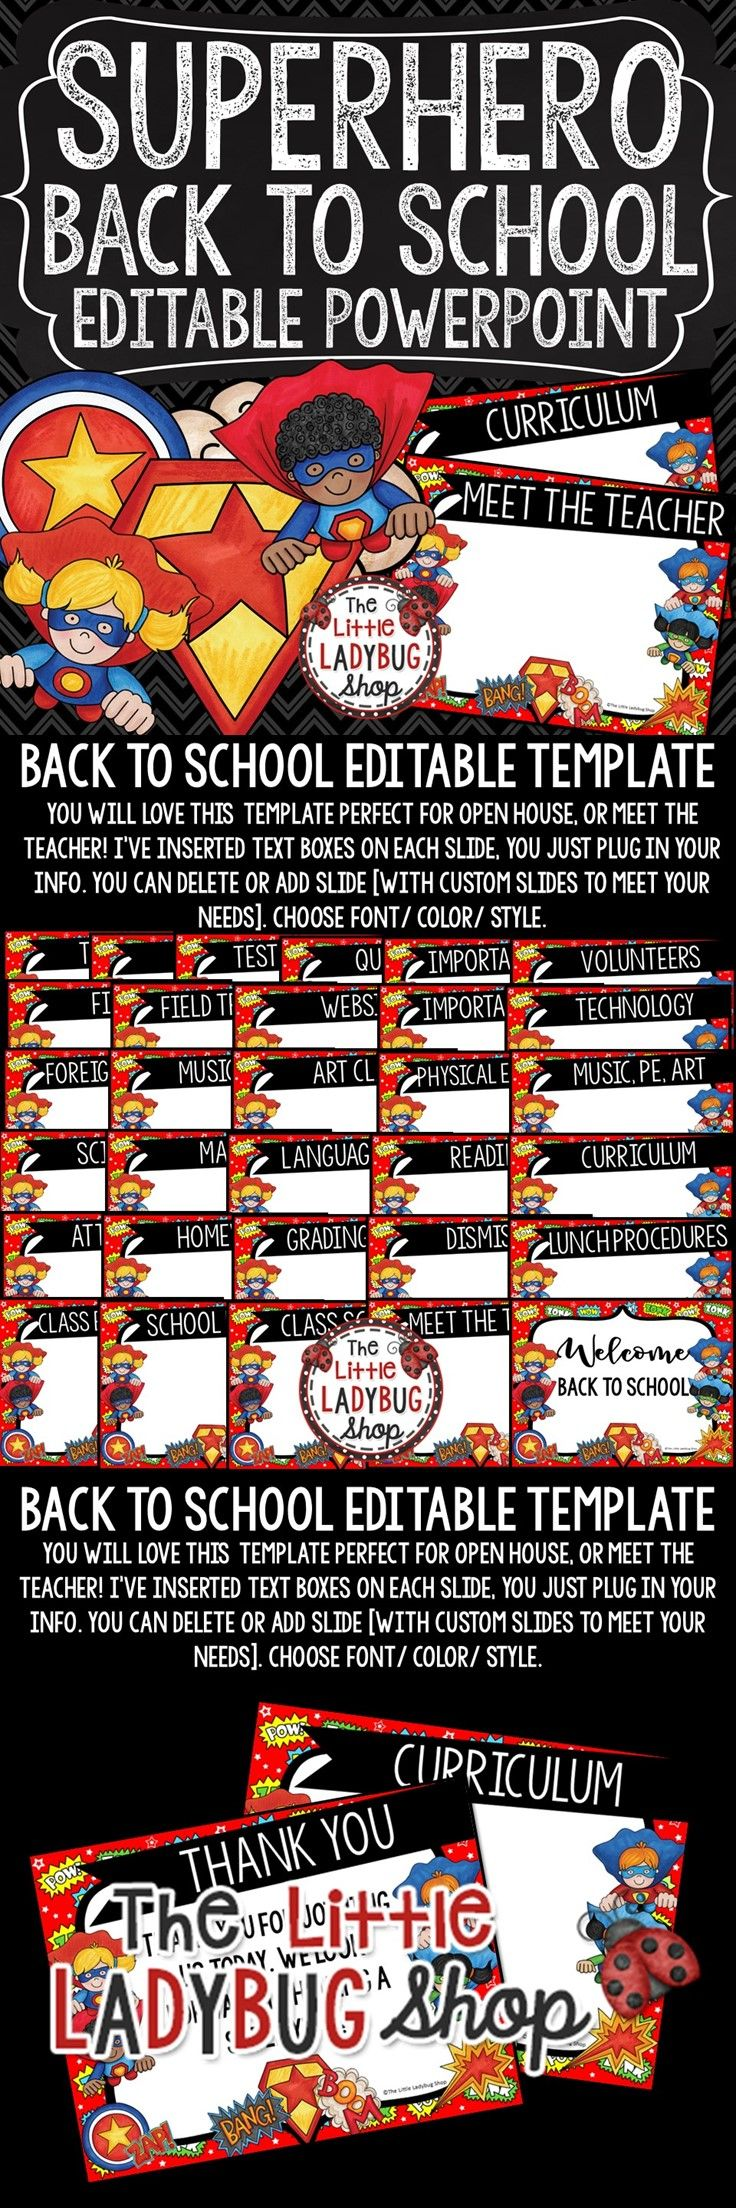 You will love this Superhero Back To School PowerPoint Template to present all your important information to your class and parents. This is perfect for Open House, Meet the Teacher, and other school functions! This template is created in PowerPoint and it is editable for you to plug in your classroom information! You can custom create your own with the blank templates provided!